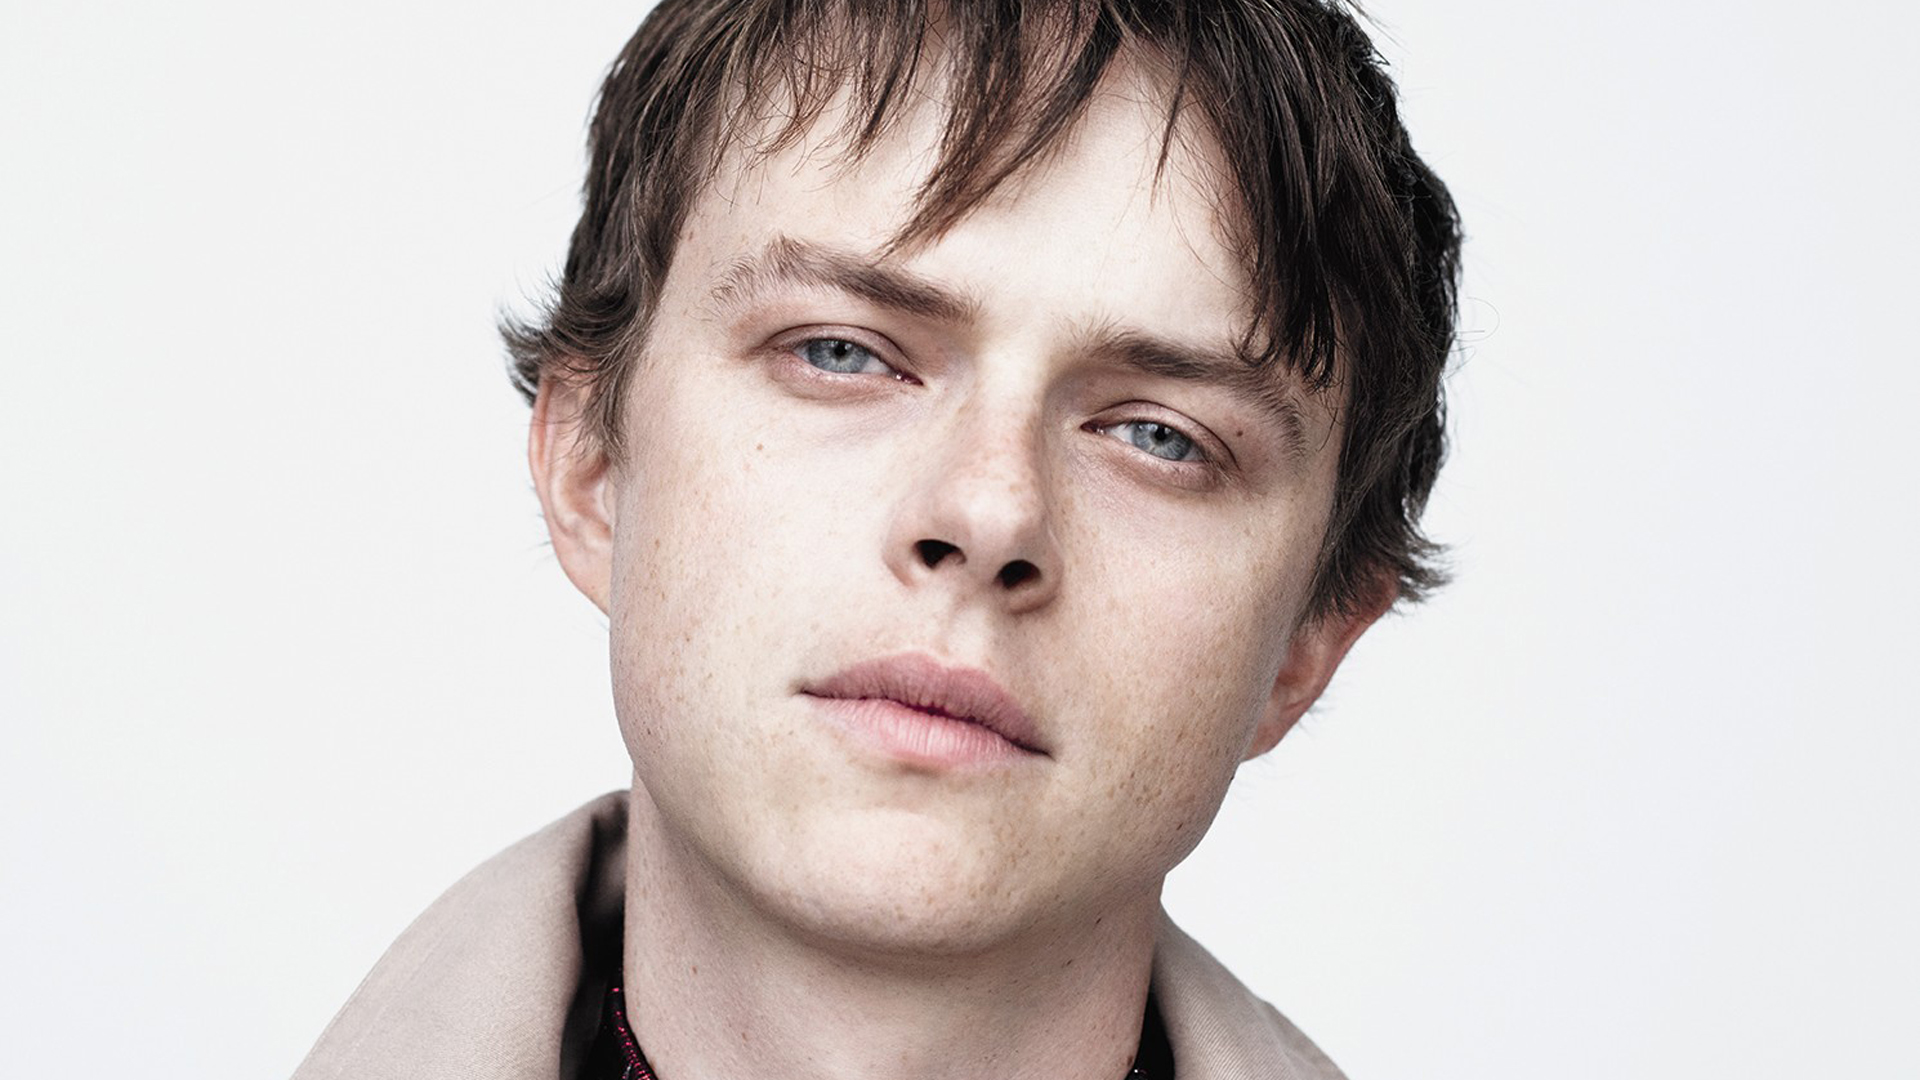 dane dehaan face wallpaper 58526